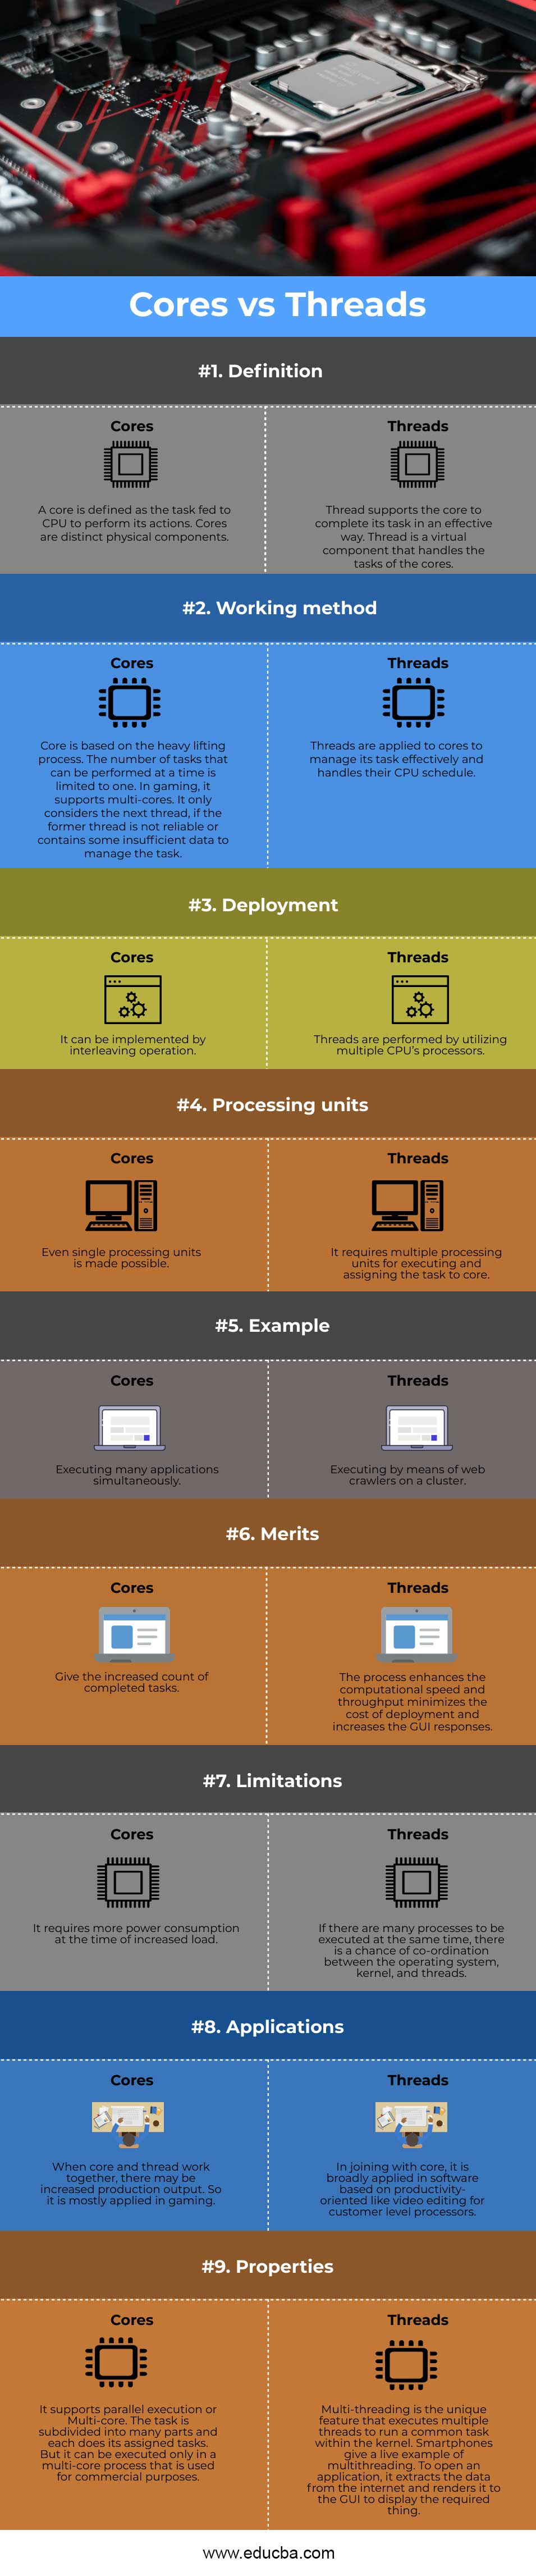 Cores-vs-Threads-info